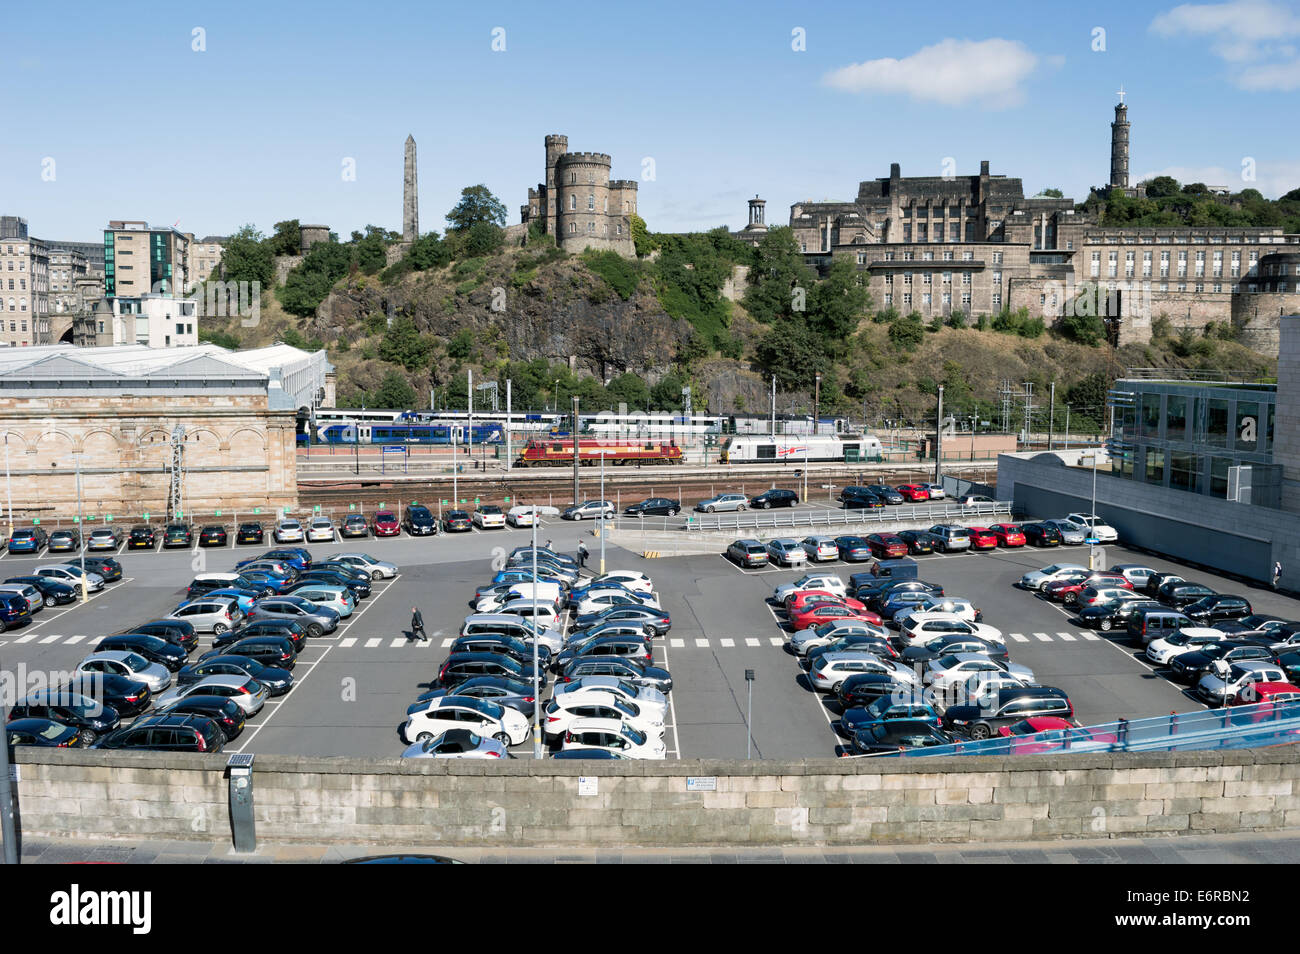 Edinburgh Waverley Train Station Car Park With St Andrew House And Calton Hill In The Background Stock Photo Alamy